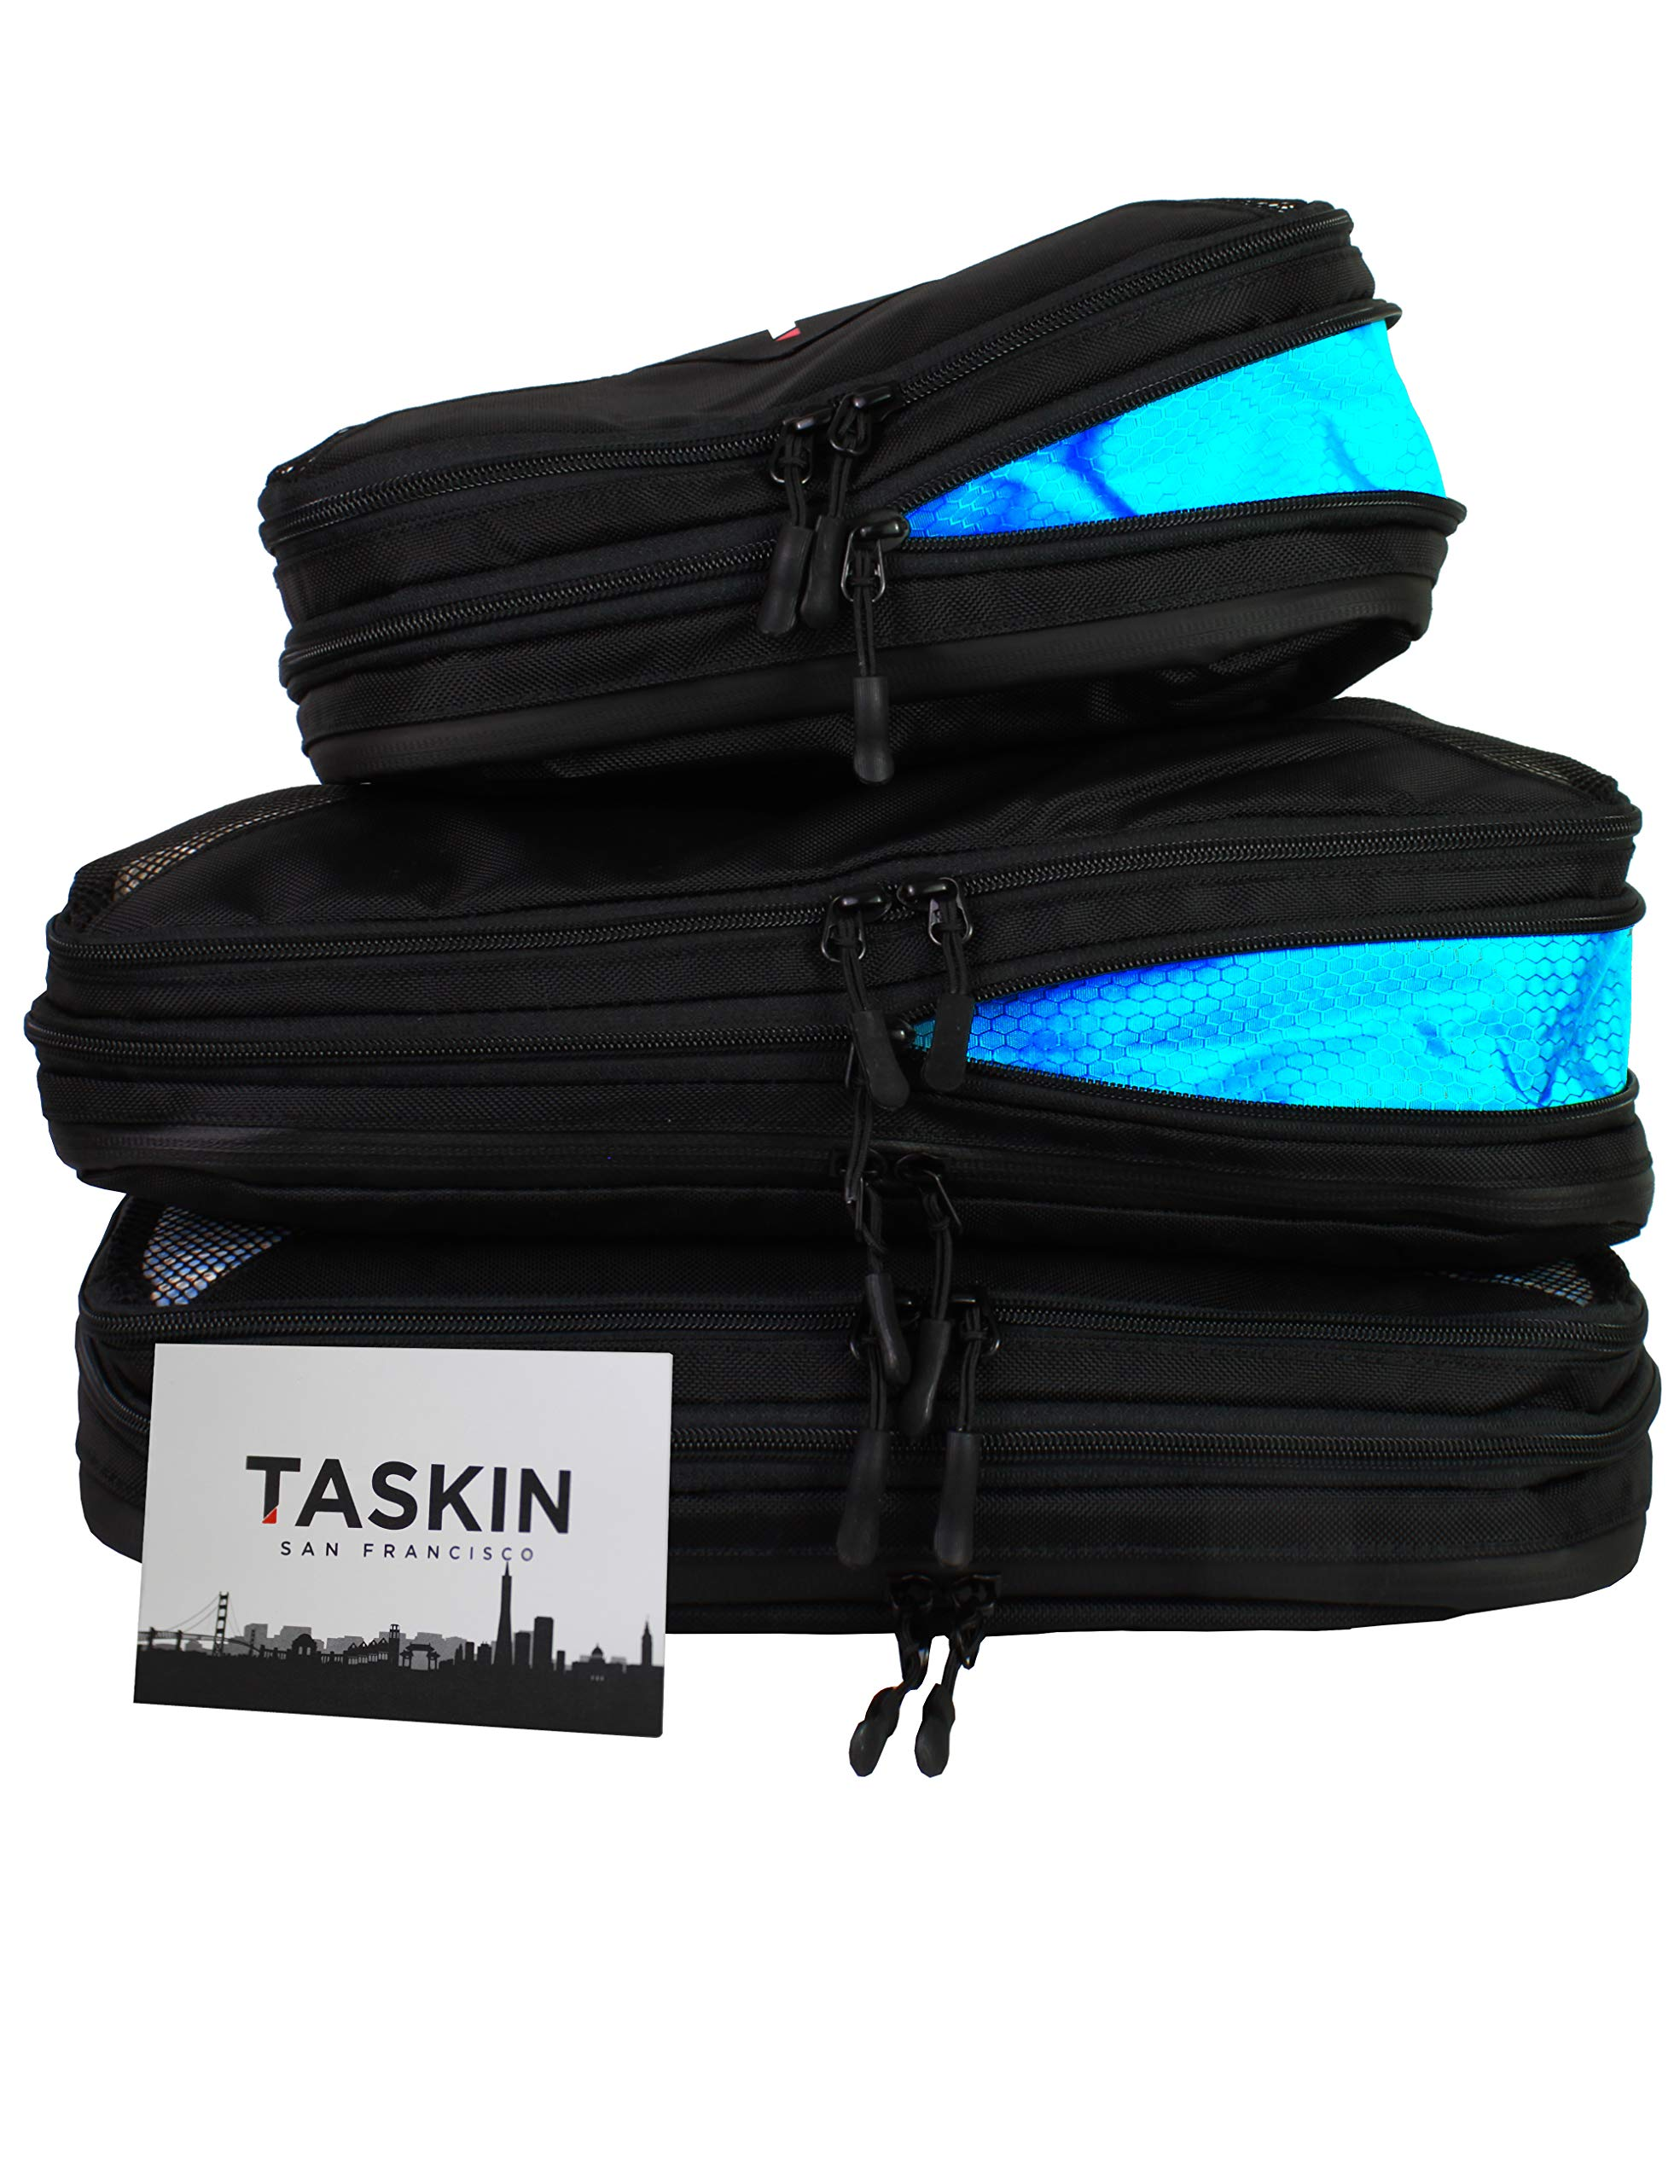 Taskin | Compression Packing Cubes | Separate Clean & Dirty Compartments w/Flexible Separator | Premium Set of 3 (2 Large + 1 Medium) | Genuine YKK Zippers